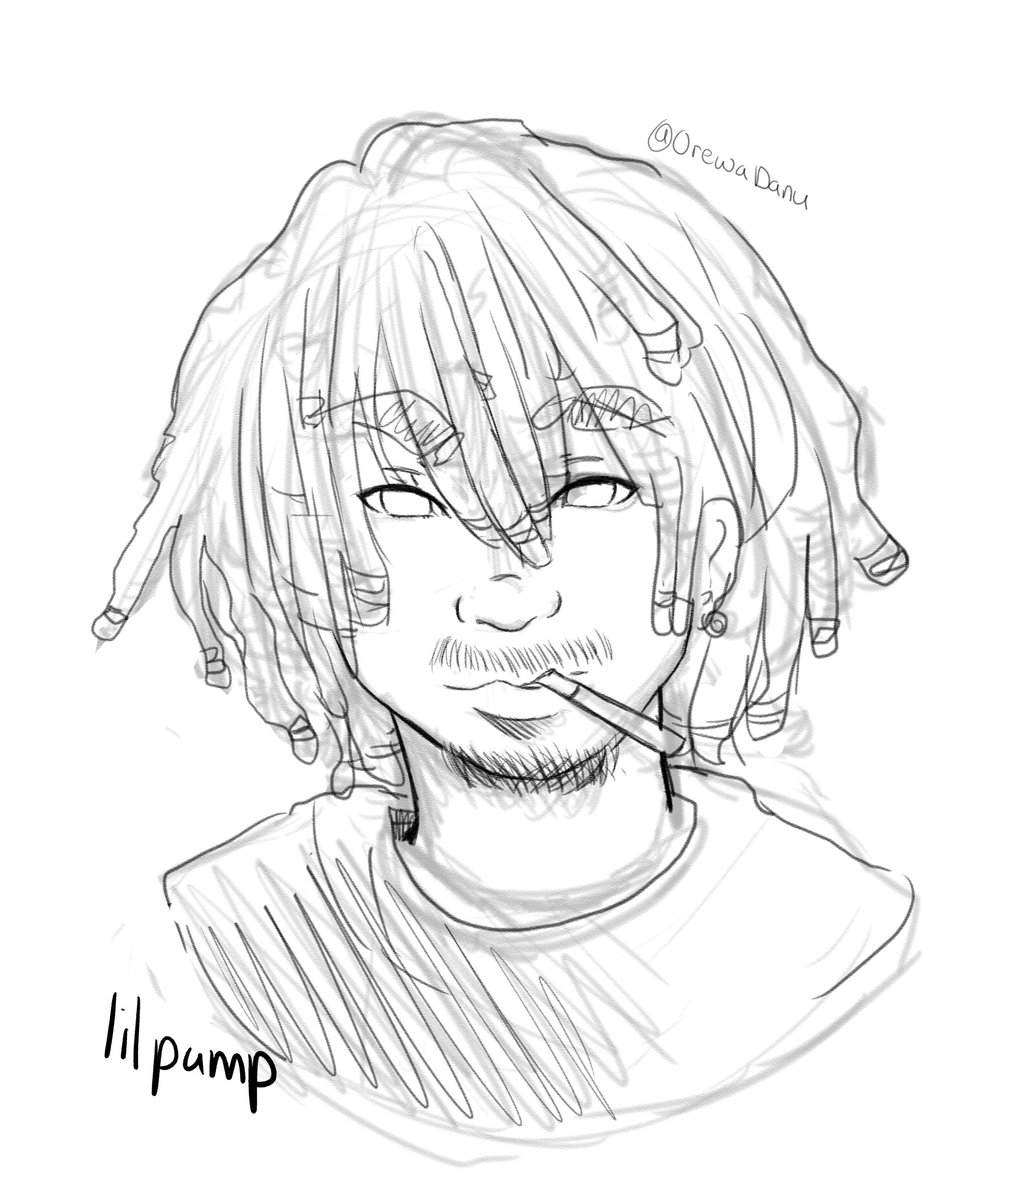 lil pump coloring pages | Lil Pump Coloring Pages Pictures to Pin on Pinterest